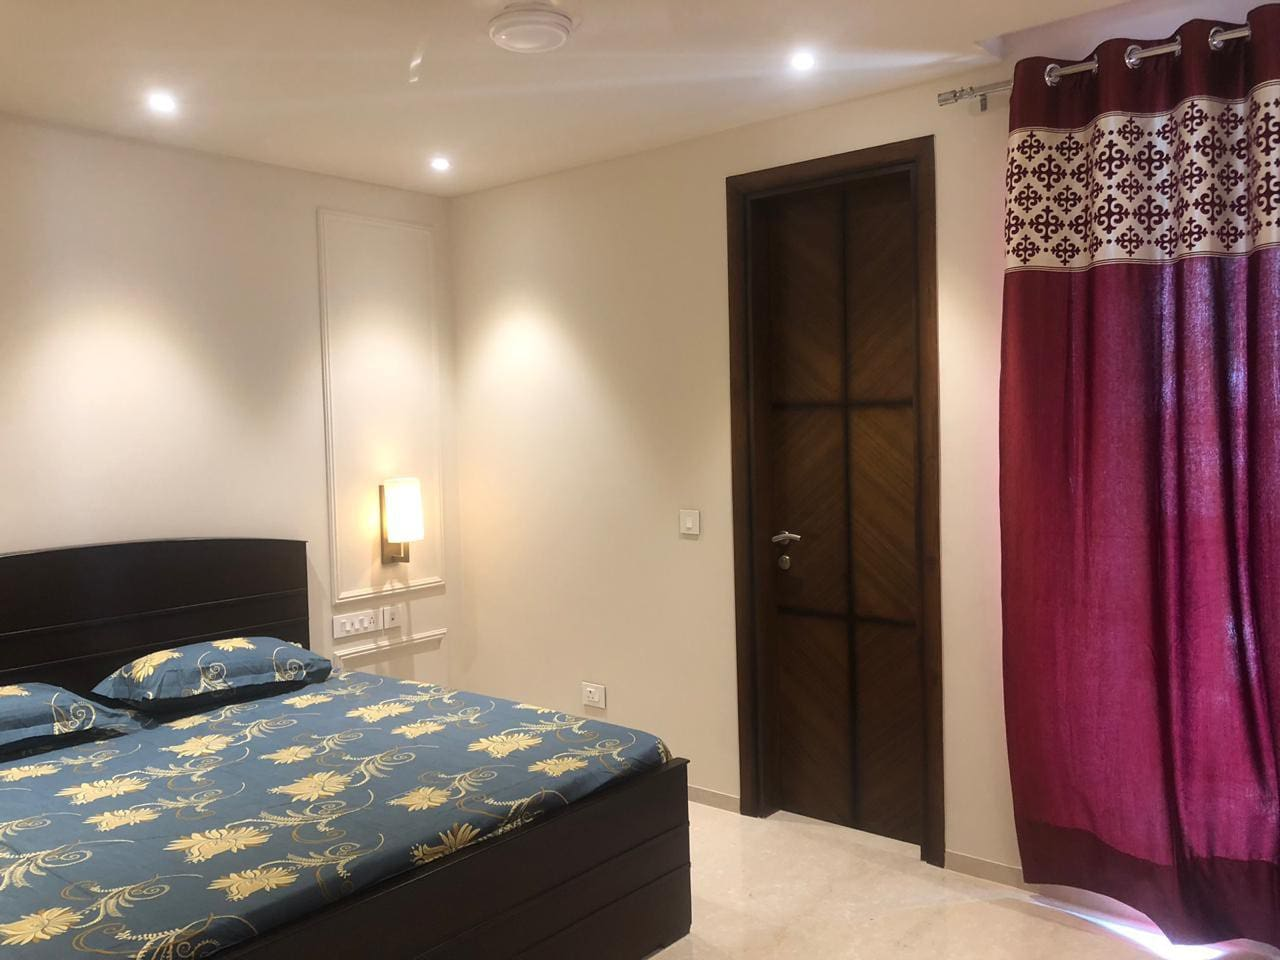 Private Room with All Locks and Full Privacy